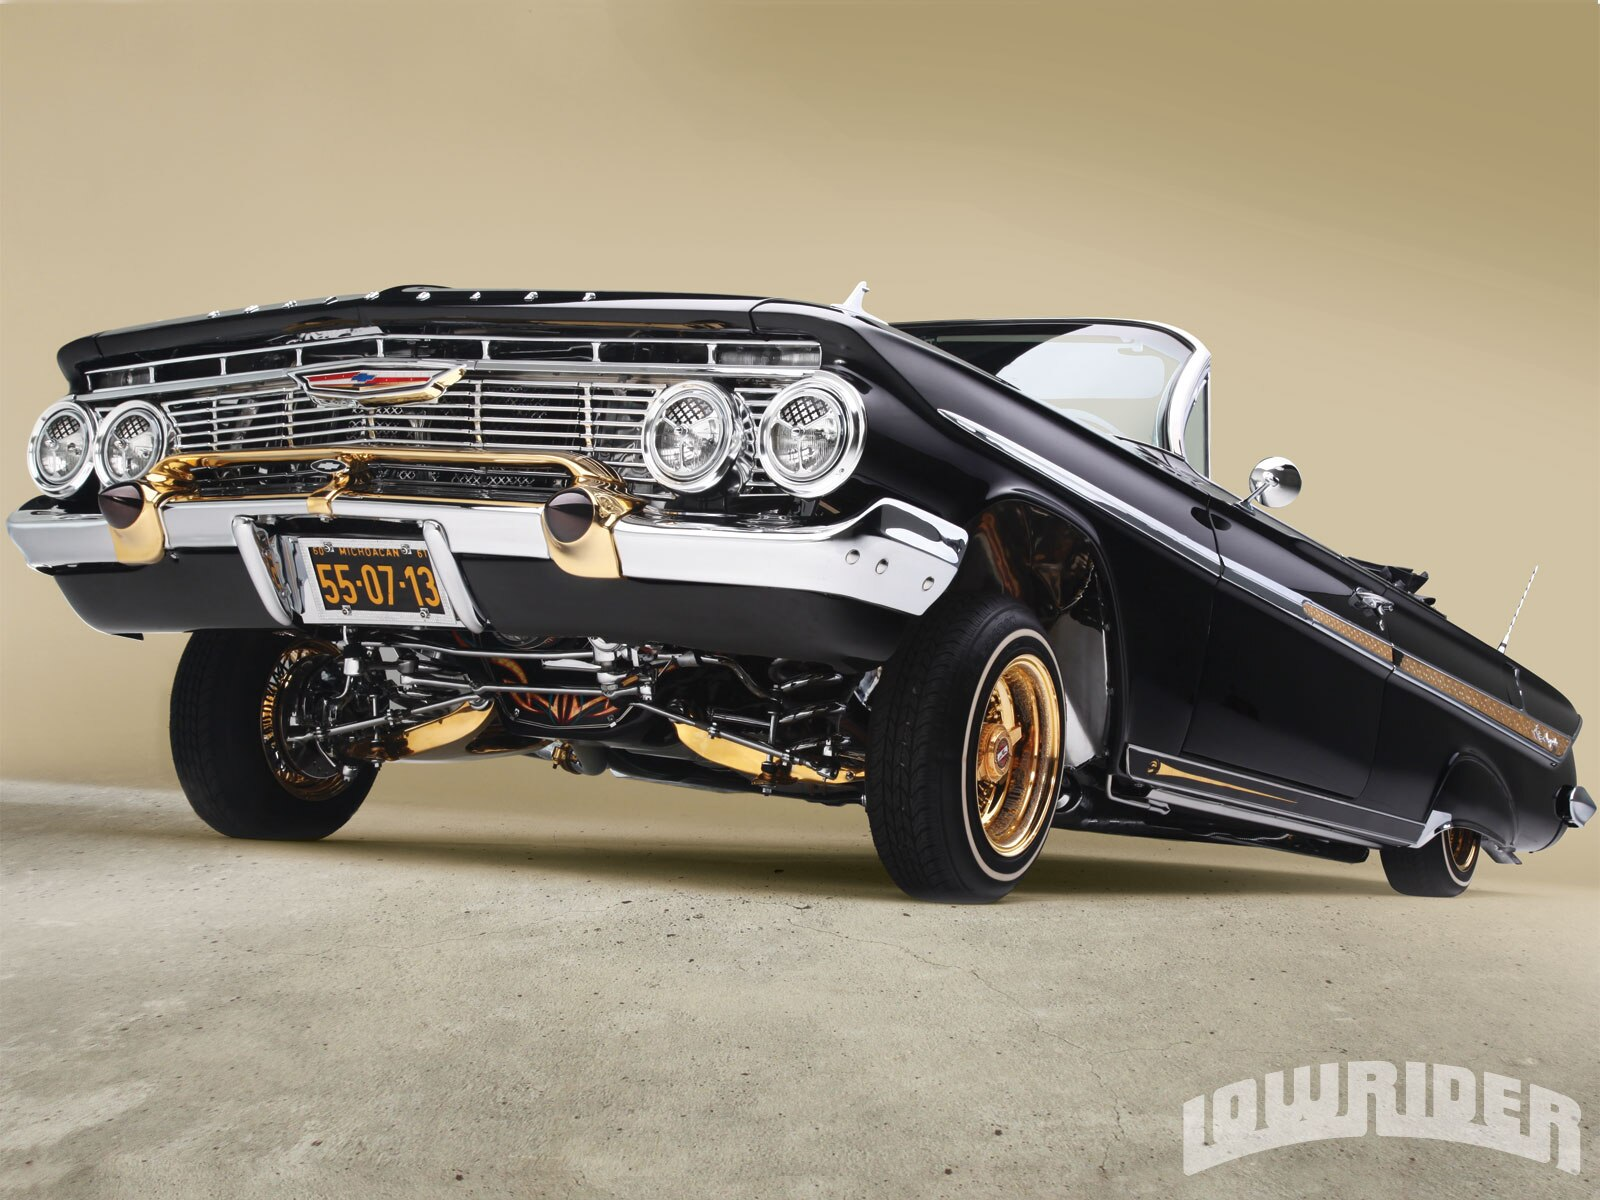 1206-lrmp-02-o-1961-chevrolet-impala-convertible-driver-side-front-view1